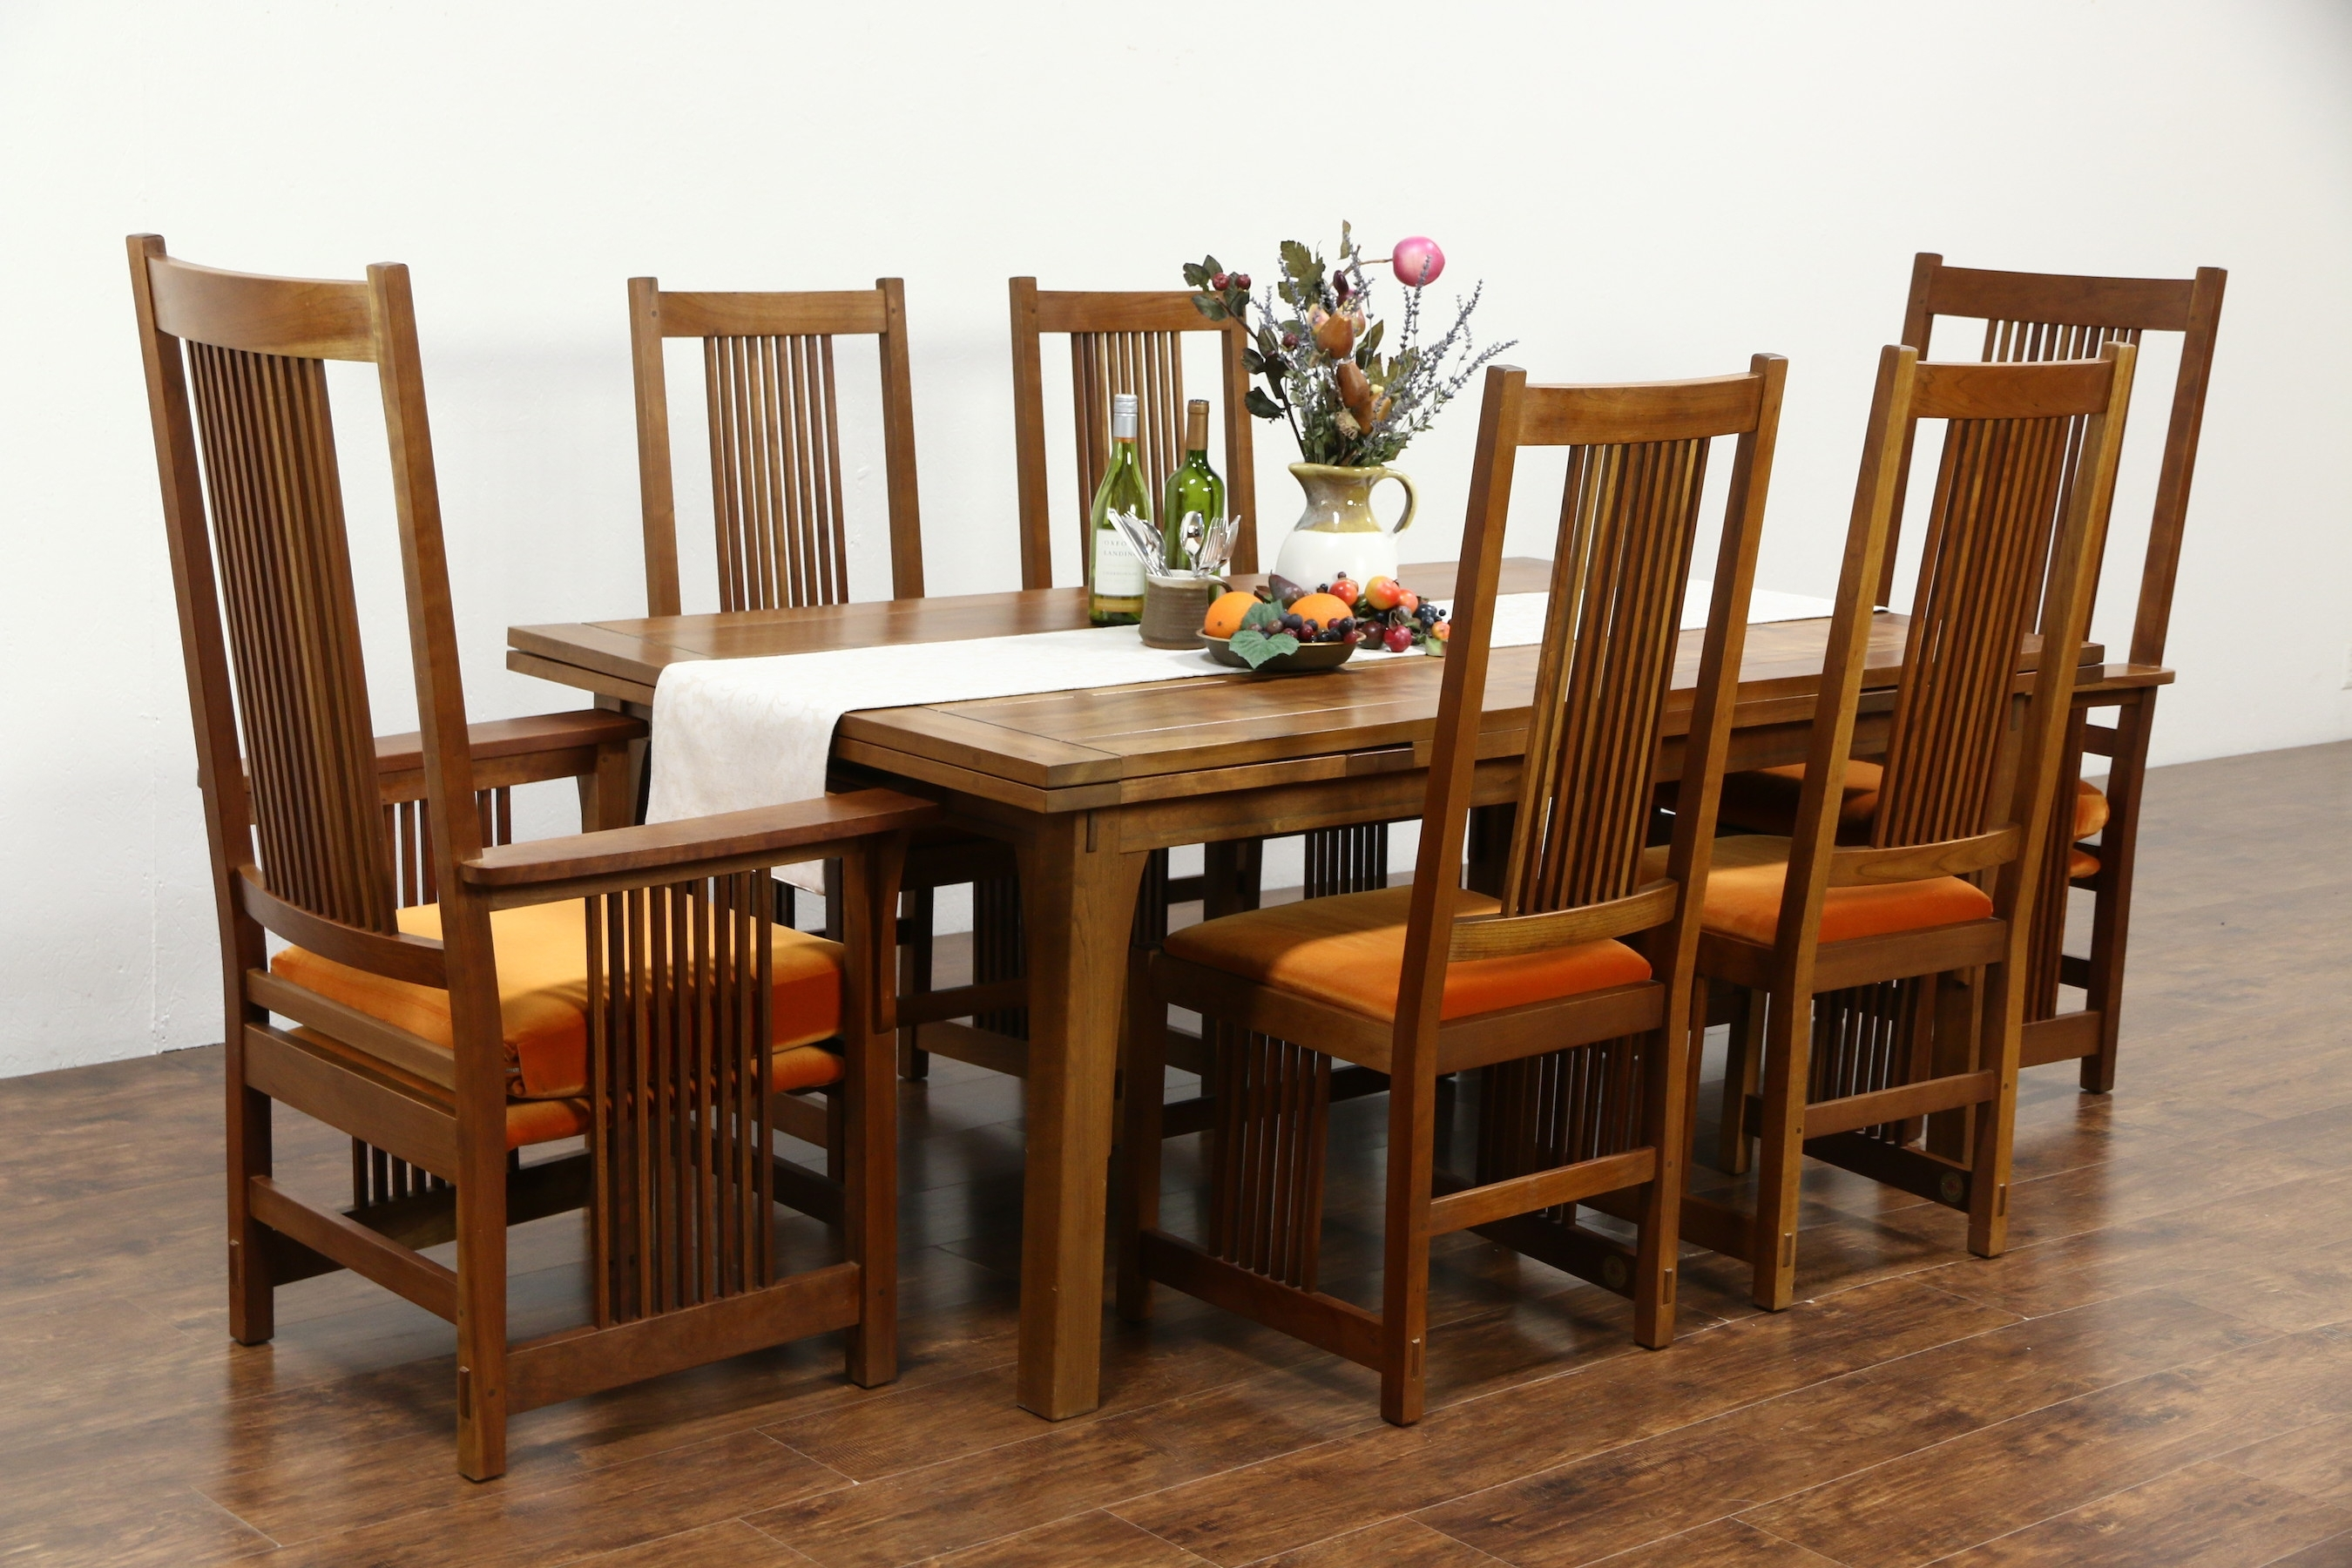 Sold – Stickley Signed Cherry Craftsman Design 1995 Dining Set Throughout Latest Craftsman Upholstered Side Chairs (View 16 of 20)